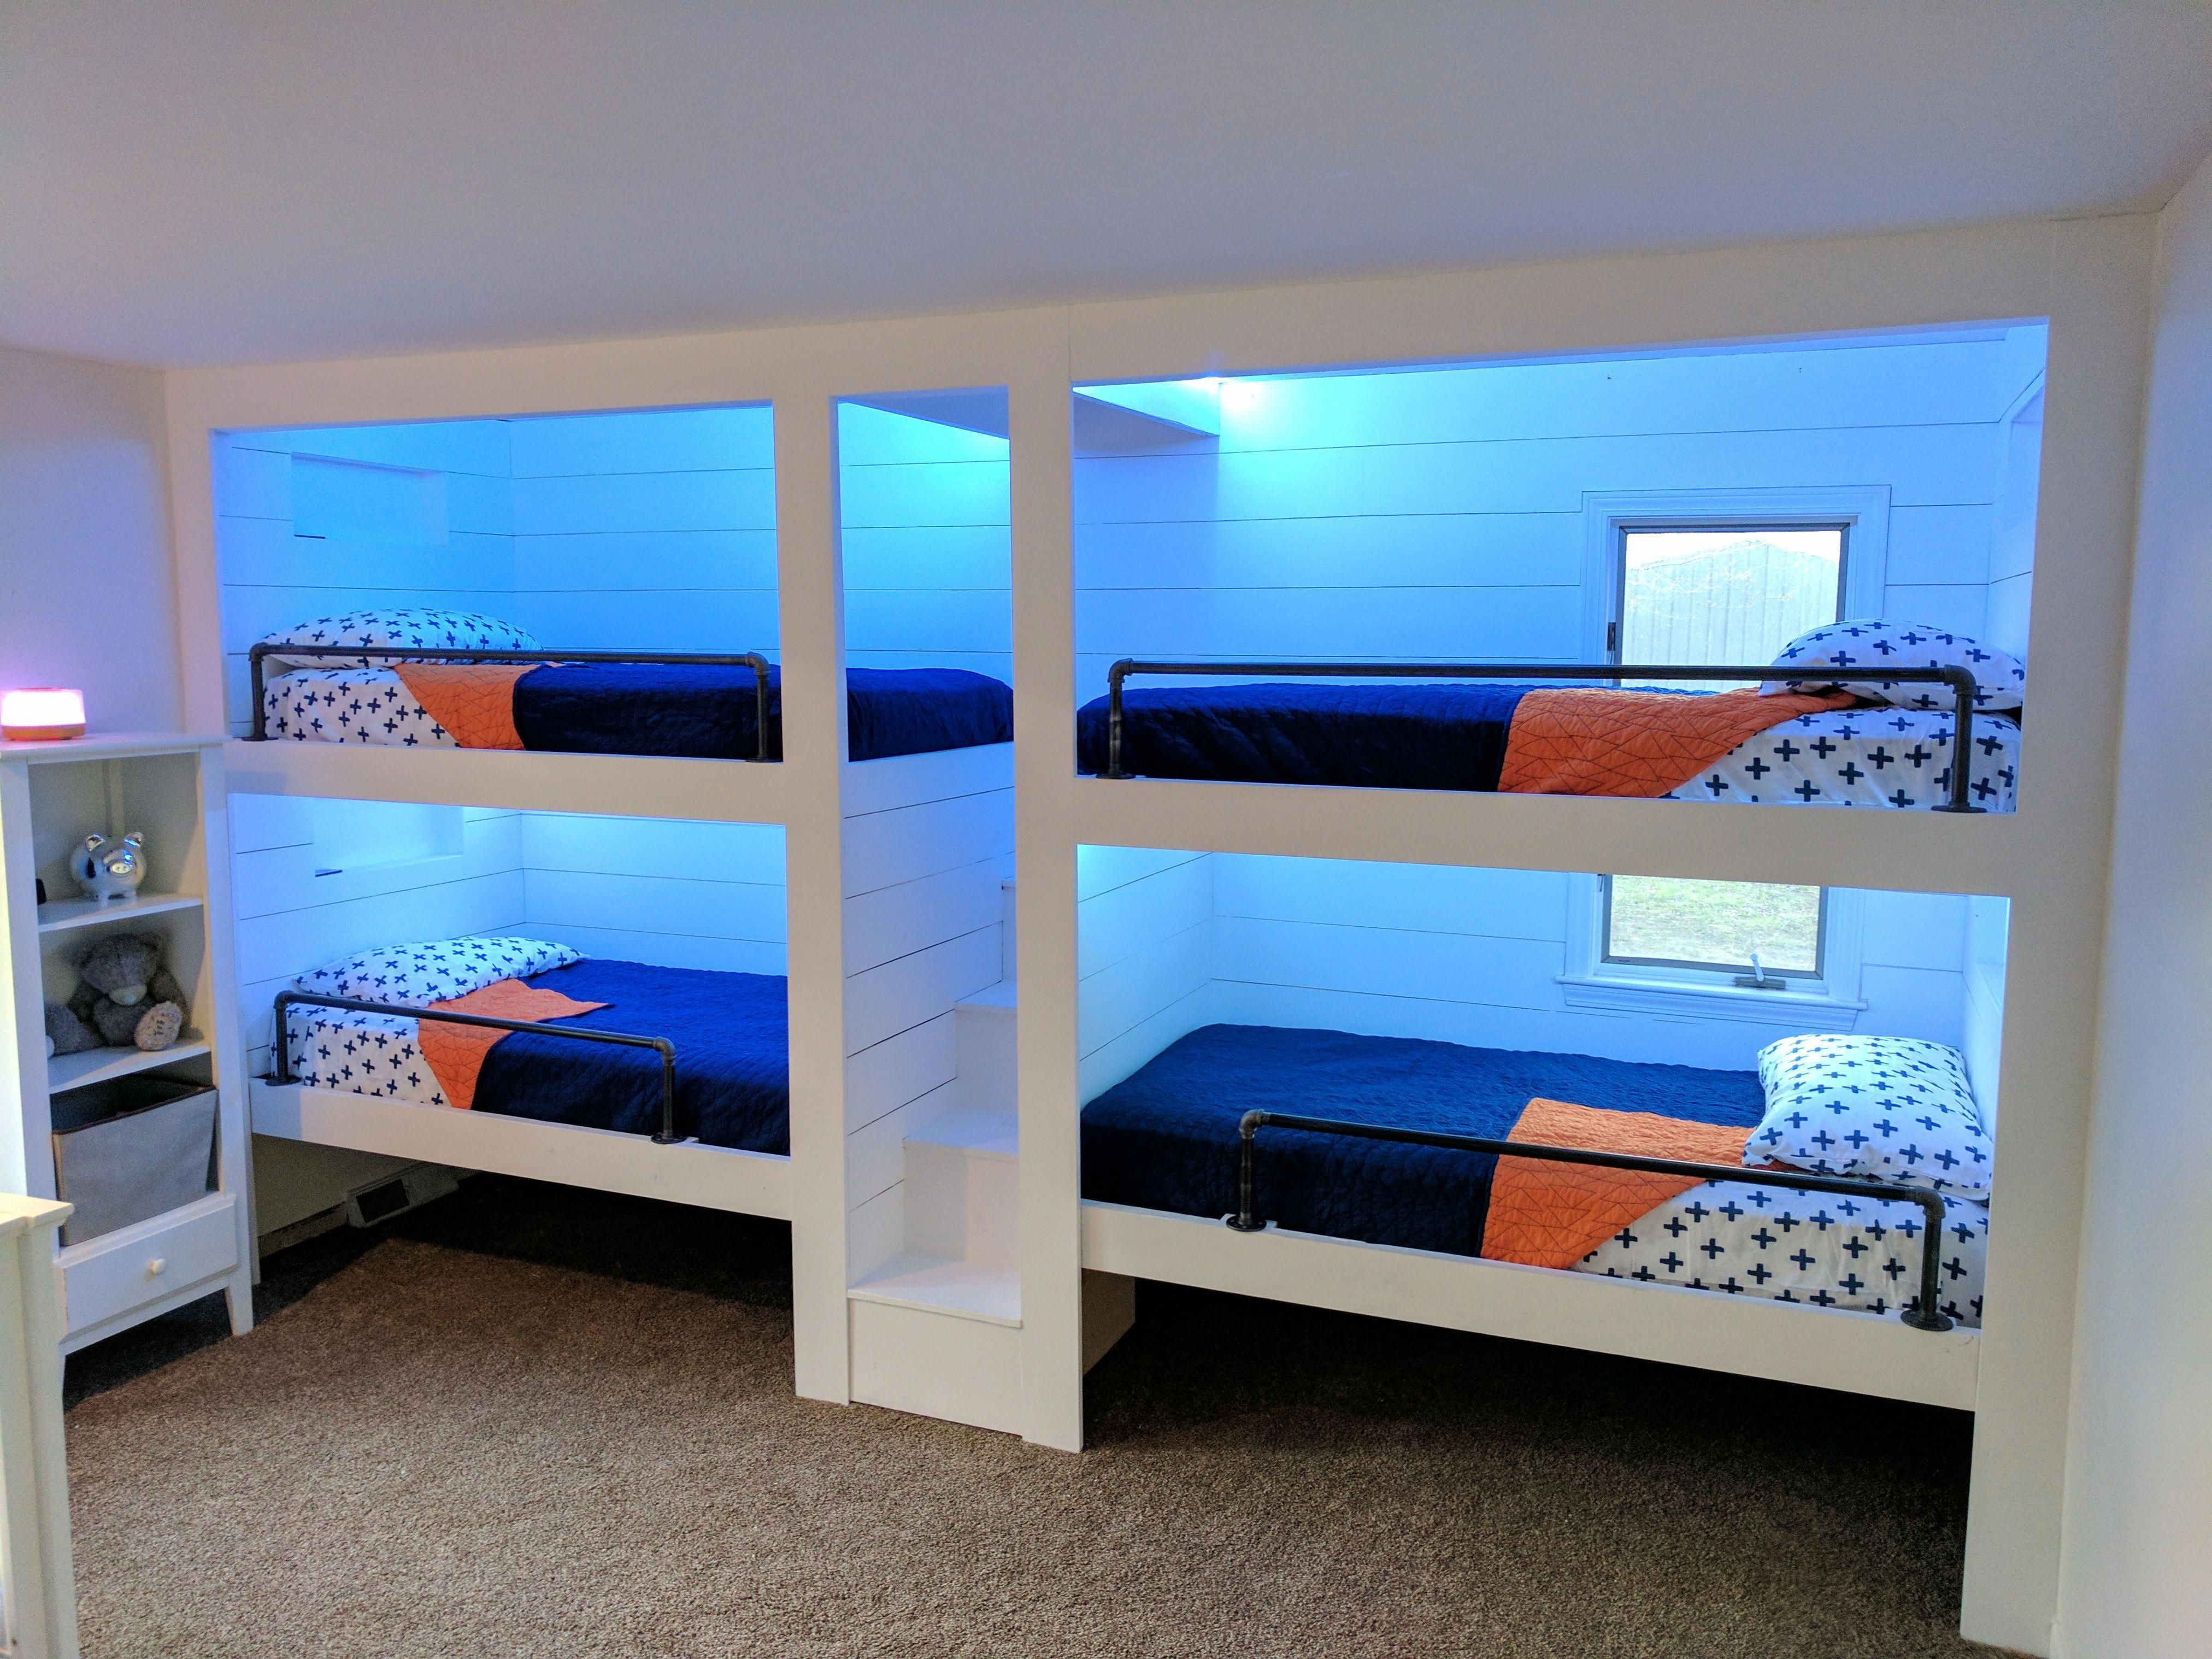 Loft bed with slide out desk  built in bunk beds  person or  person bunk beds My husband and I